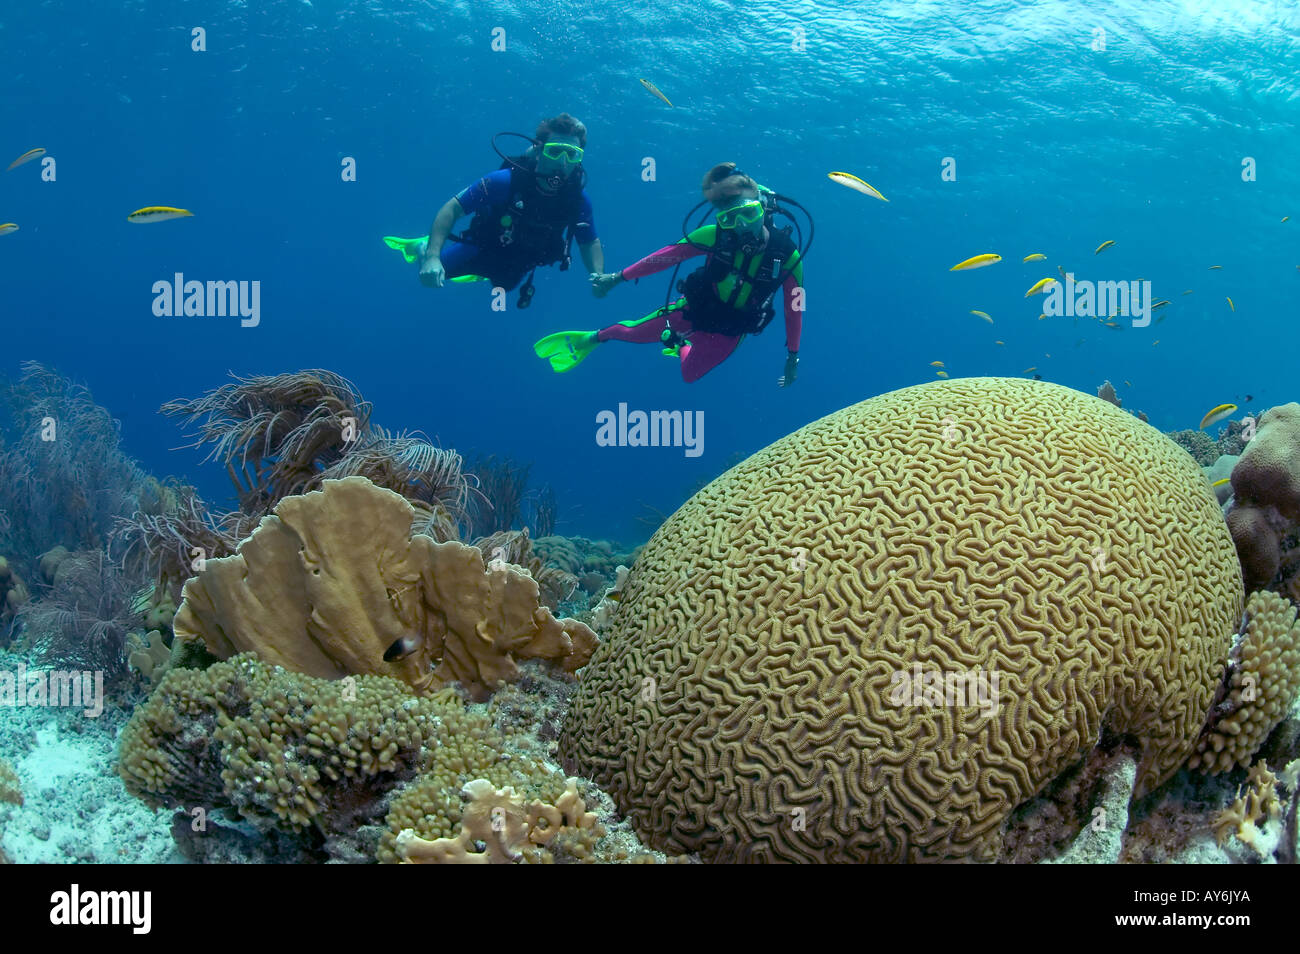 A PAIR OF SCUBA DIVERS ON A SHALLOW REEFTOP IN KLEIN BONAIRE - Stock Image